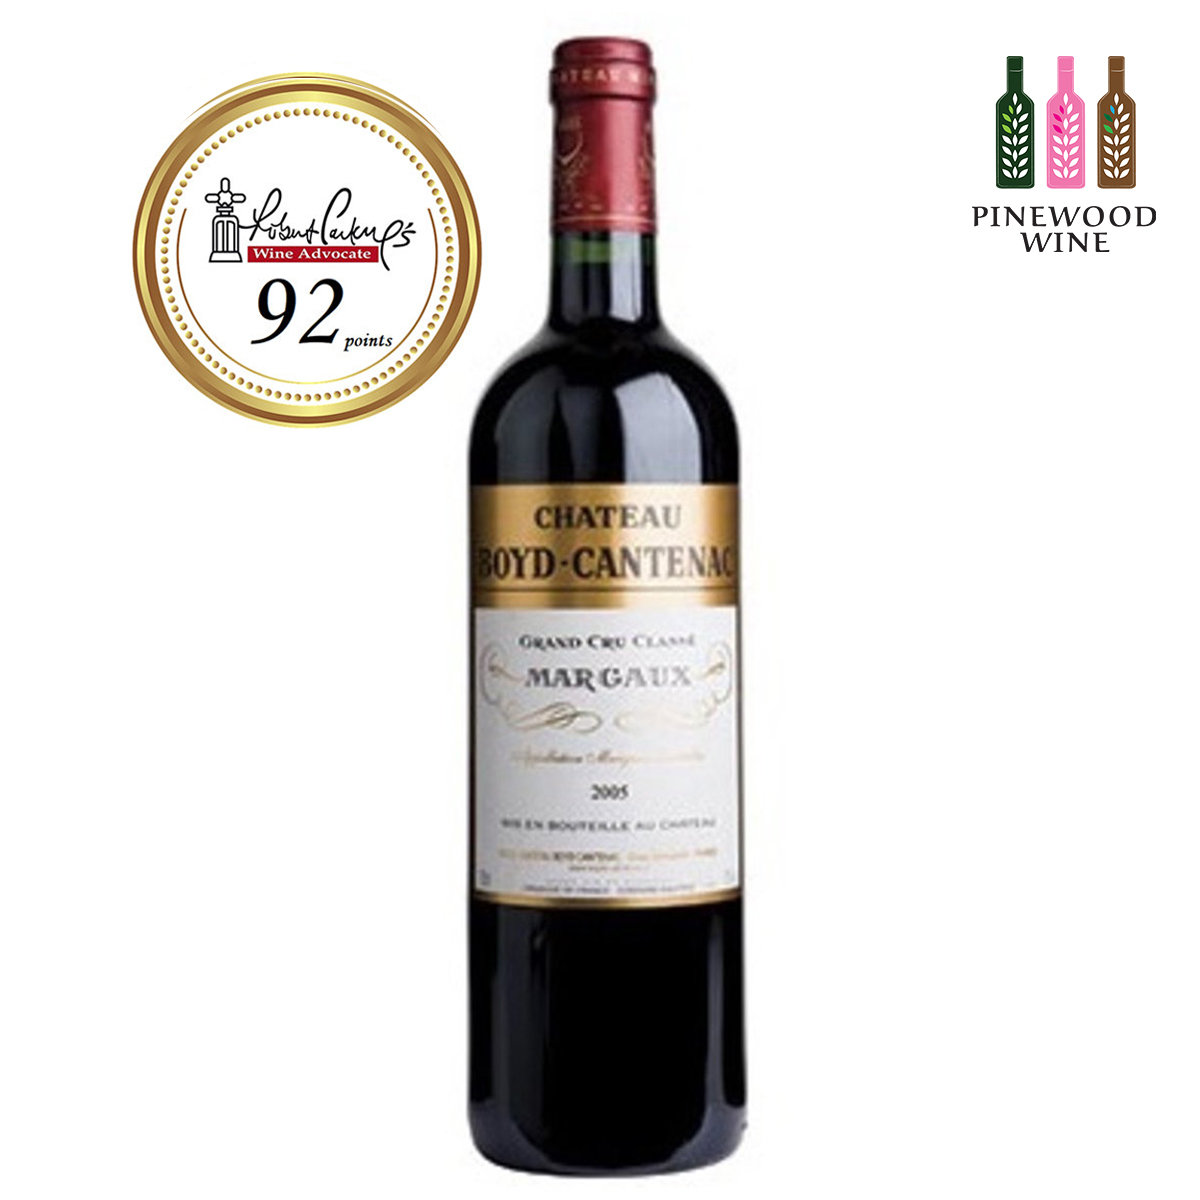 2005, RP 92 Margaux